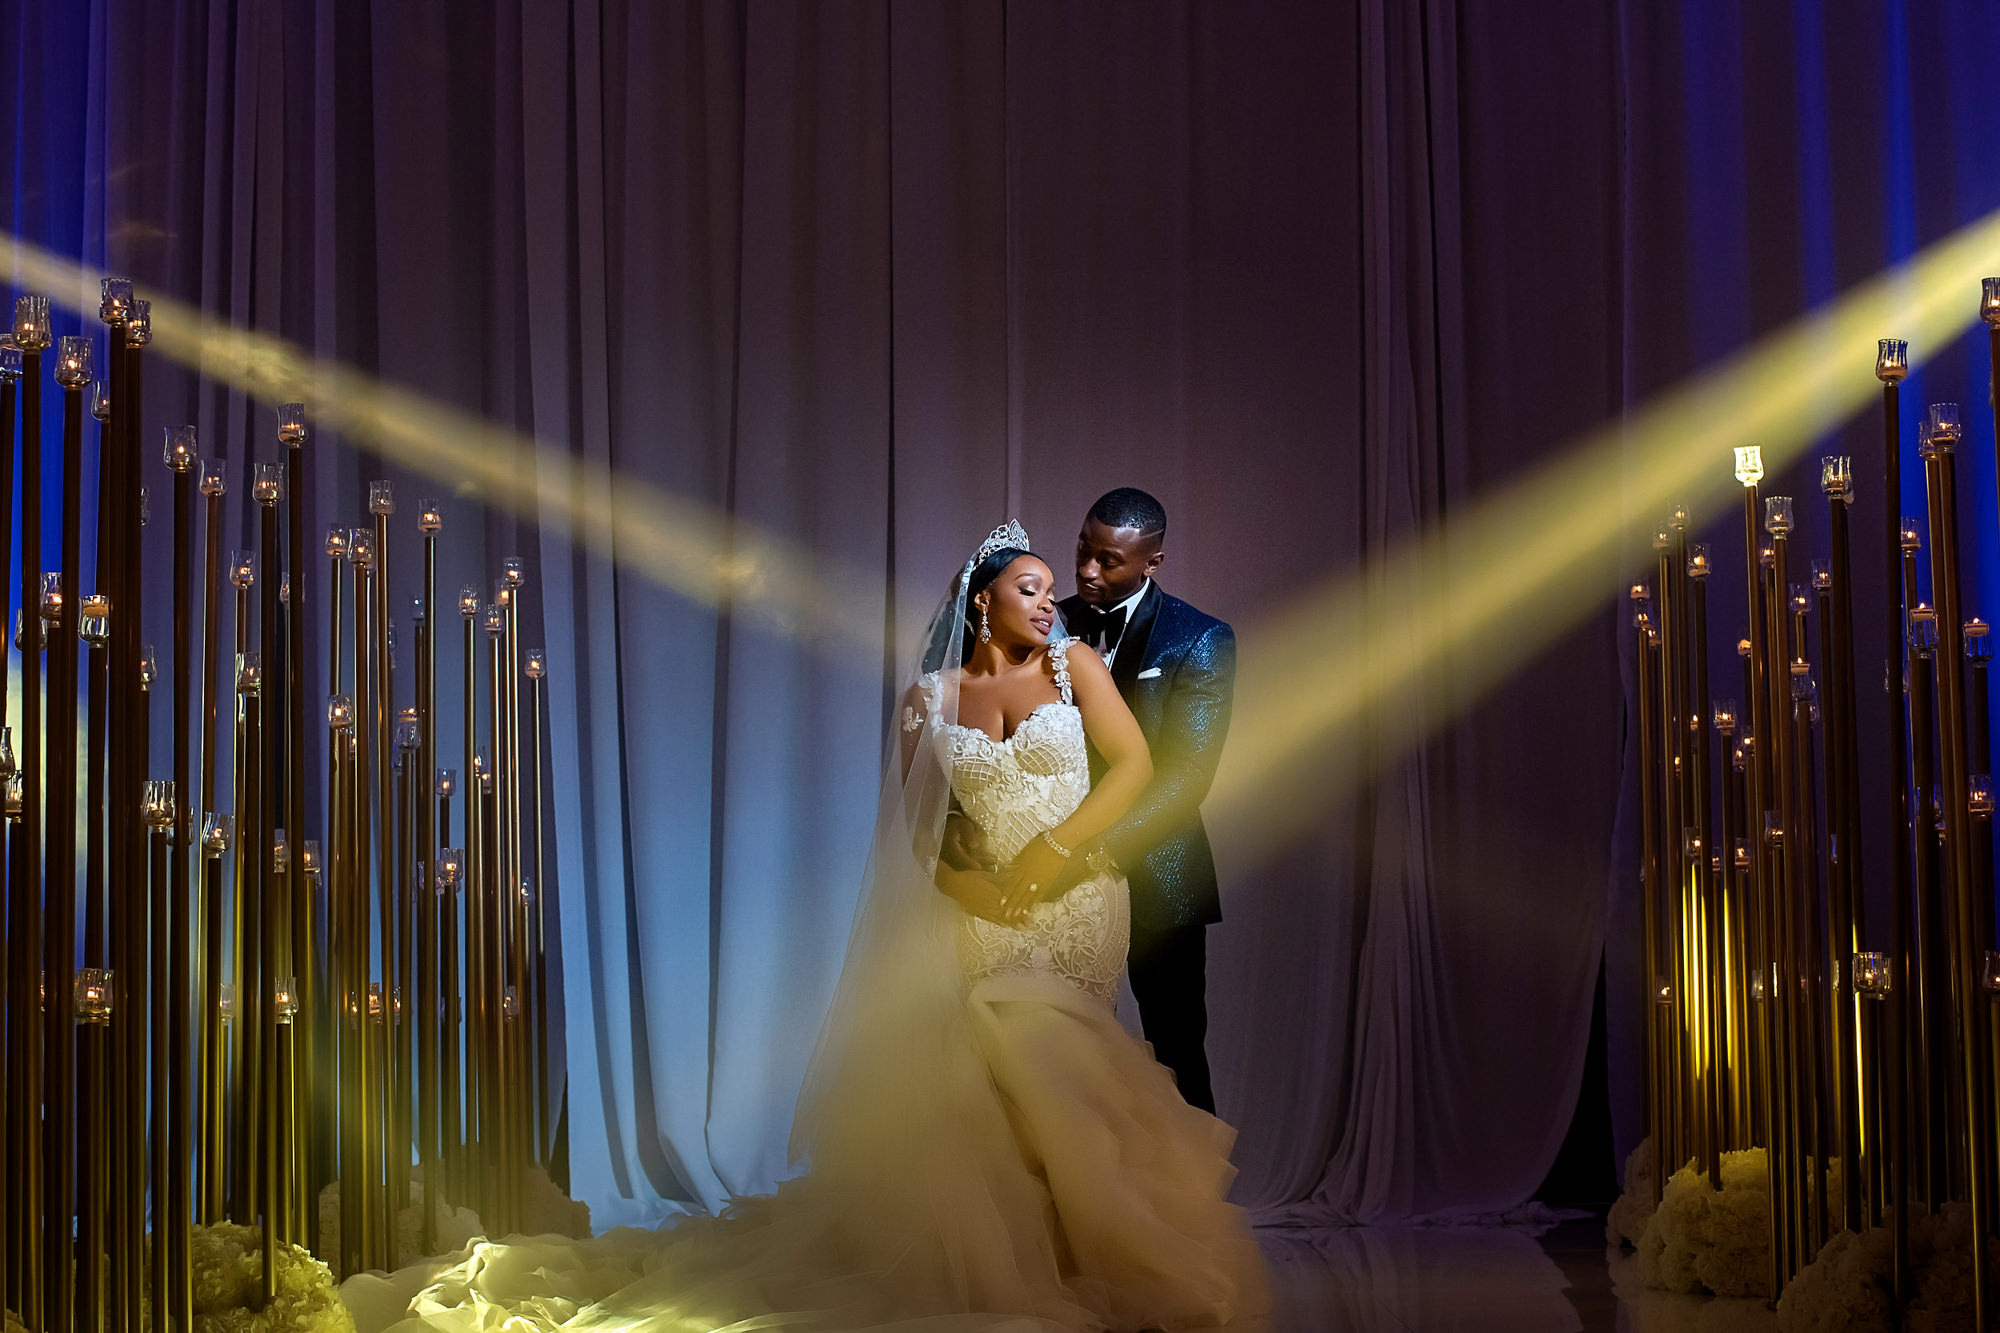 Glamorous couple in spotlights - photo by Alakija Studios